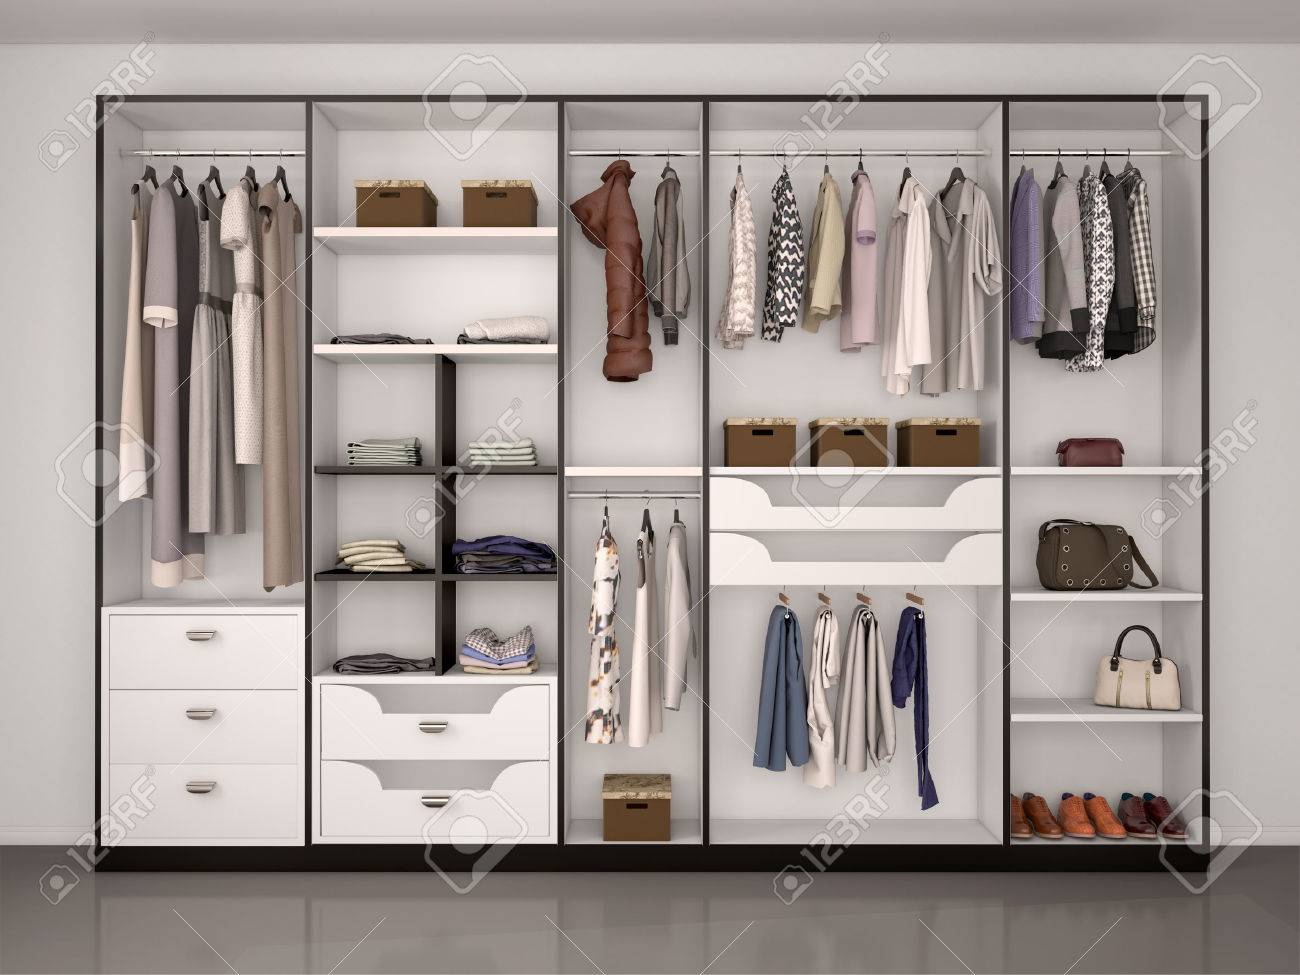 Gentil Black And White Wardrobe Closet Full Of Different Things. 3d Illustration.  Stock Illustration